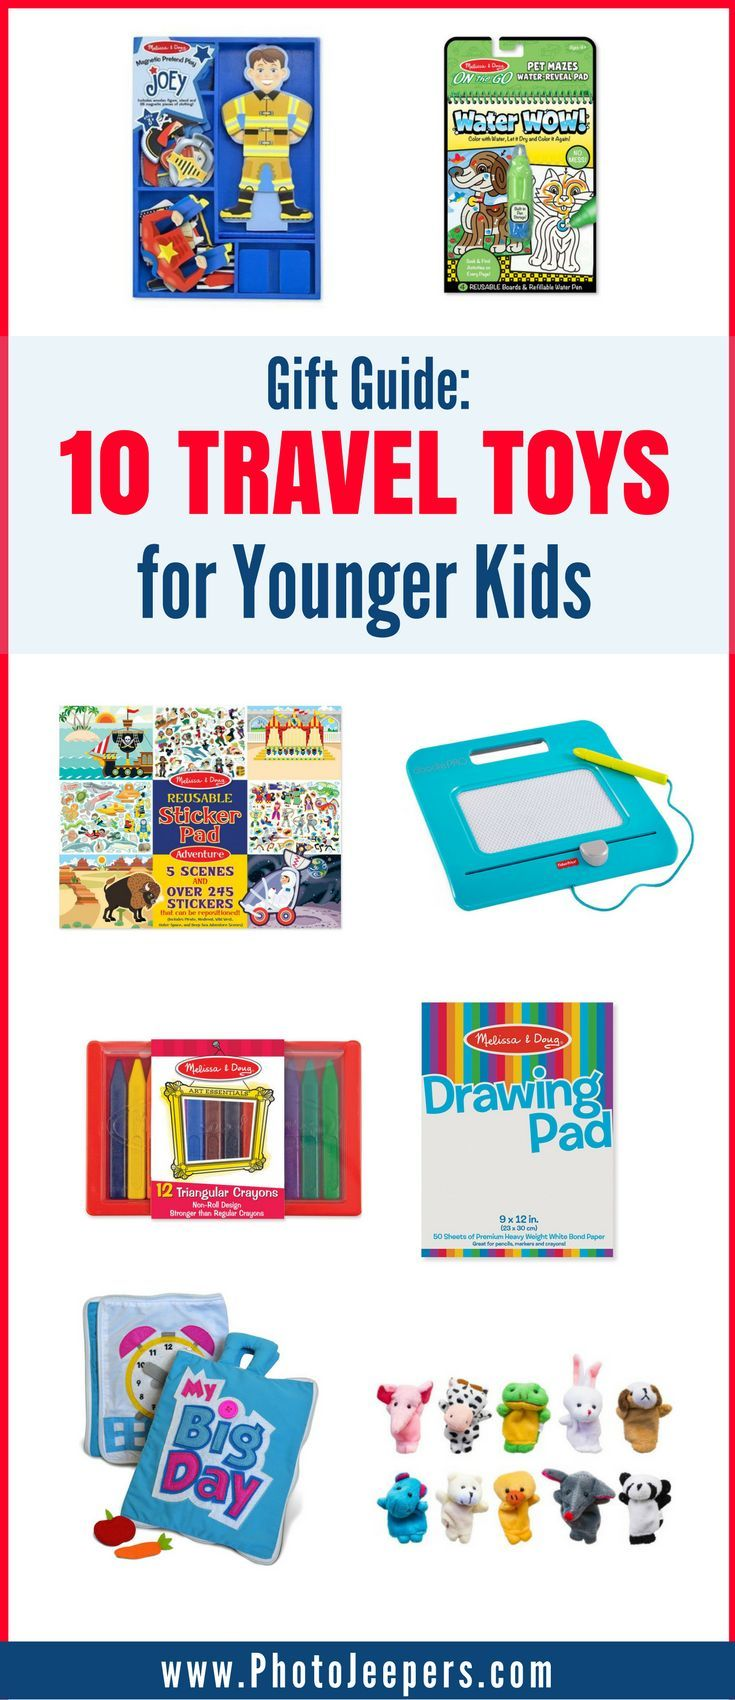 Are you looking for the perfect gifts for kids who travel? We will share our favorite travel toys for younger kids to help keep them distracted and happy on long trips. If you're planning a road trip for the holidays, you'll want to grab these fun travel toys and travel activities for a road trip with kids before you leave. Make sure you save this to your travel or Christmas board so you can grab these gifts for your kids!  #giftguide #traveltoys #giftidea